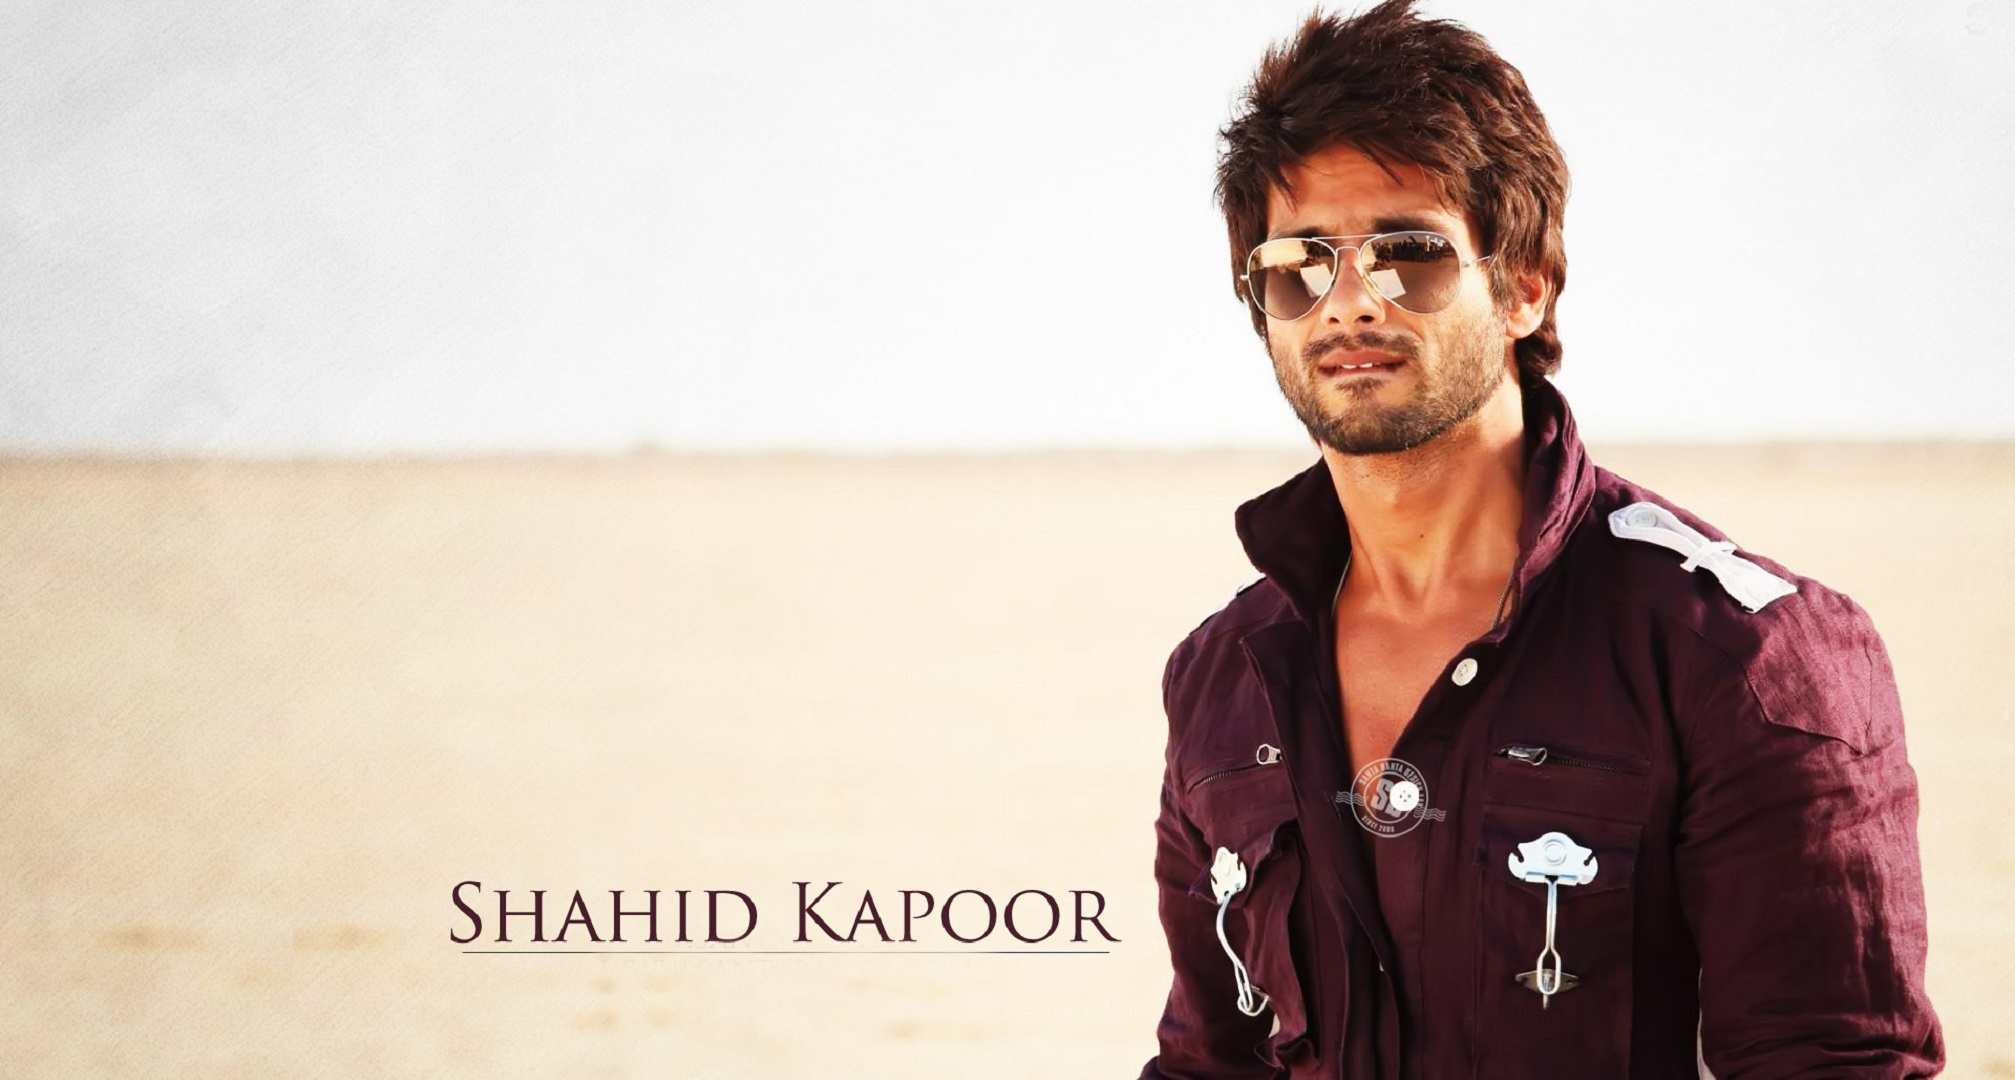 Shahid Kapoor High Quality Wallpapers